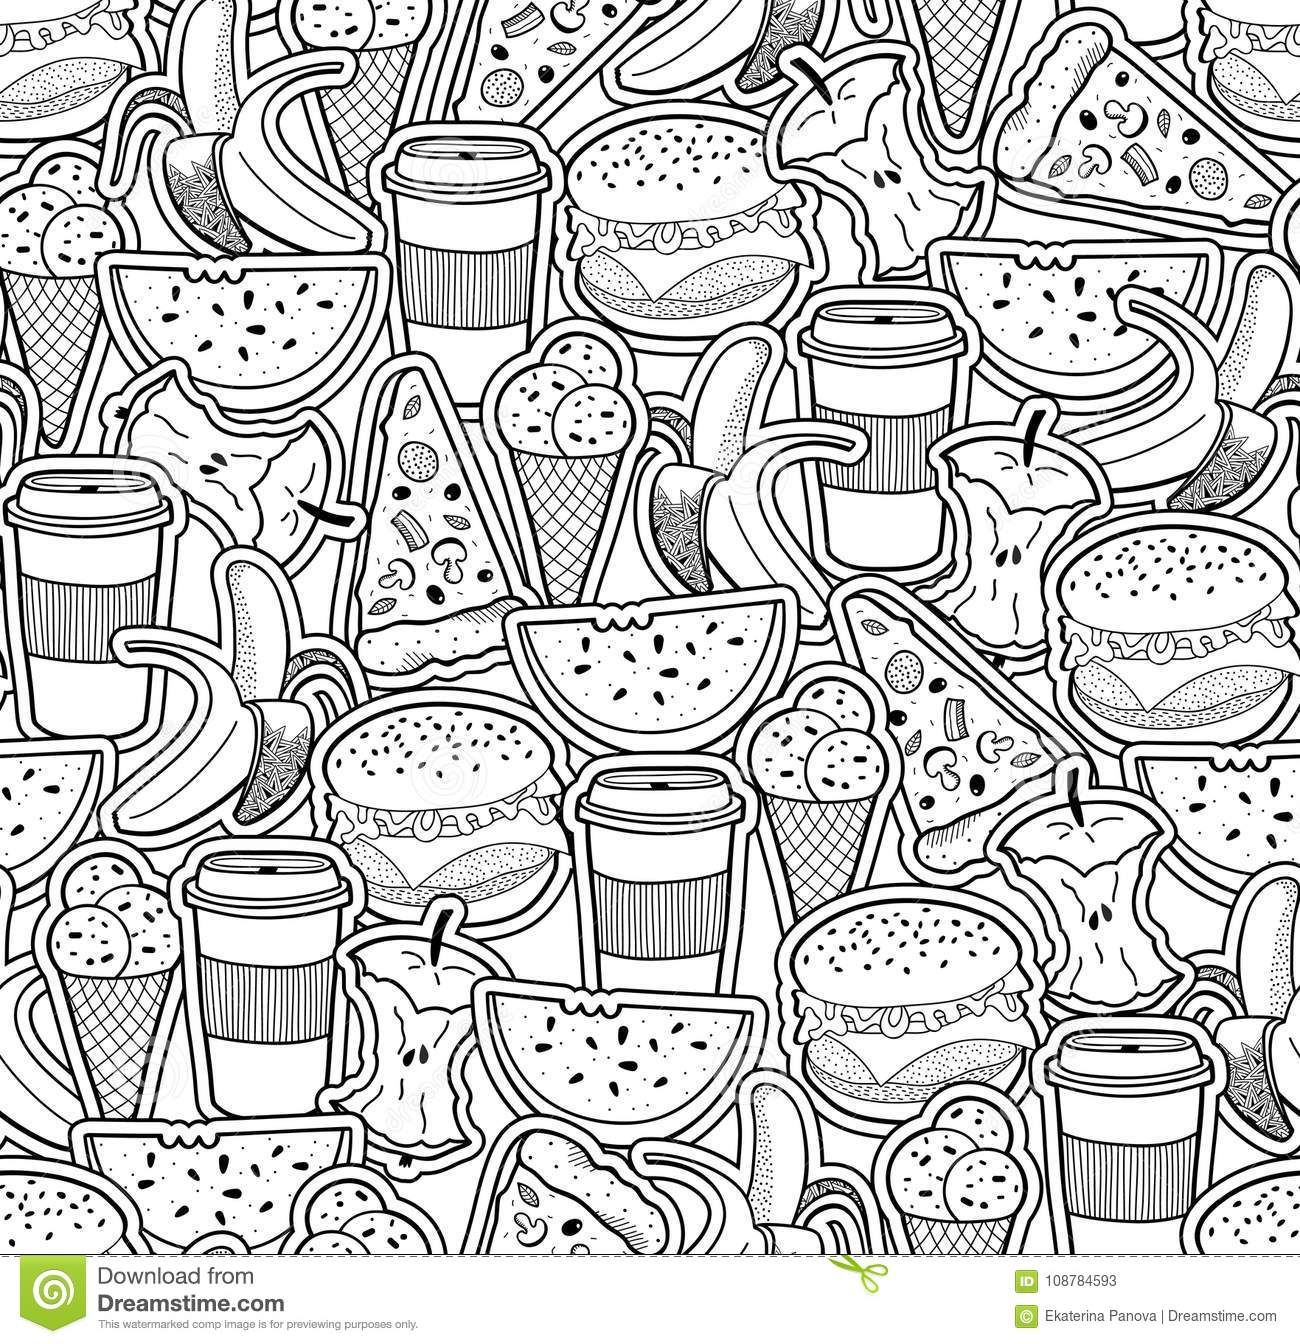 Chance The Rapper Coloring Book Wallpaper Posted By Christopher Johnson